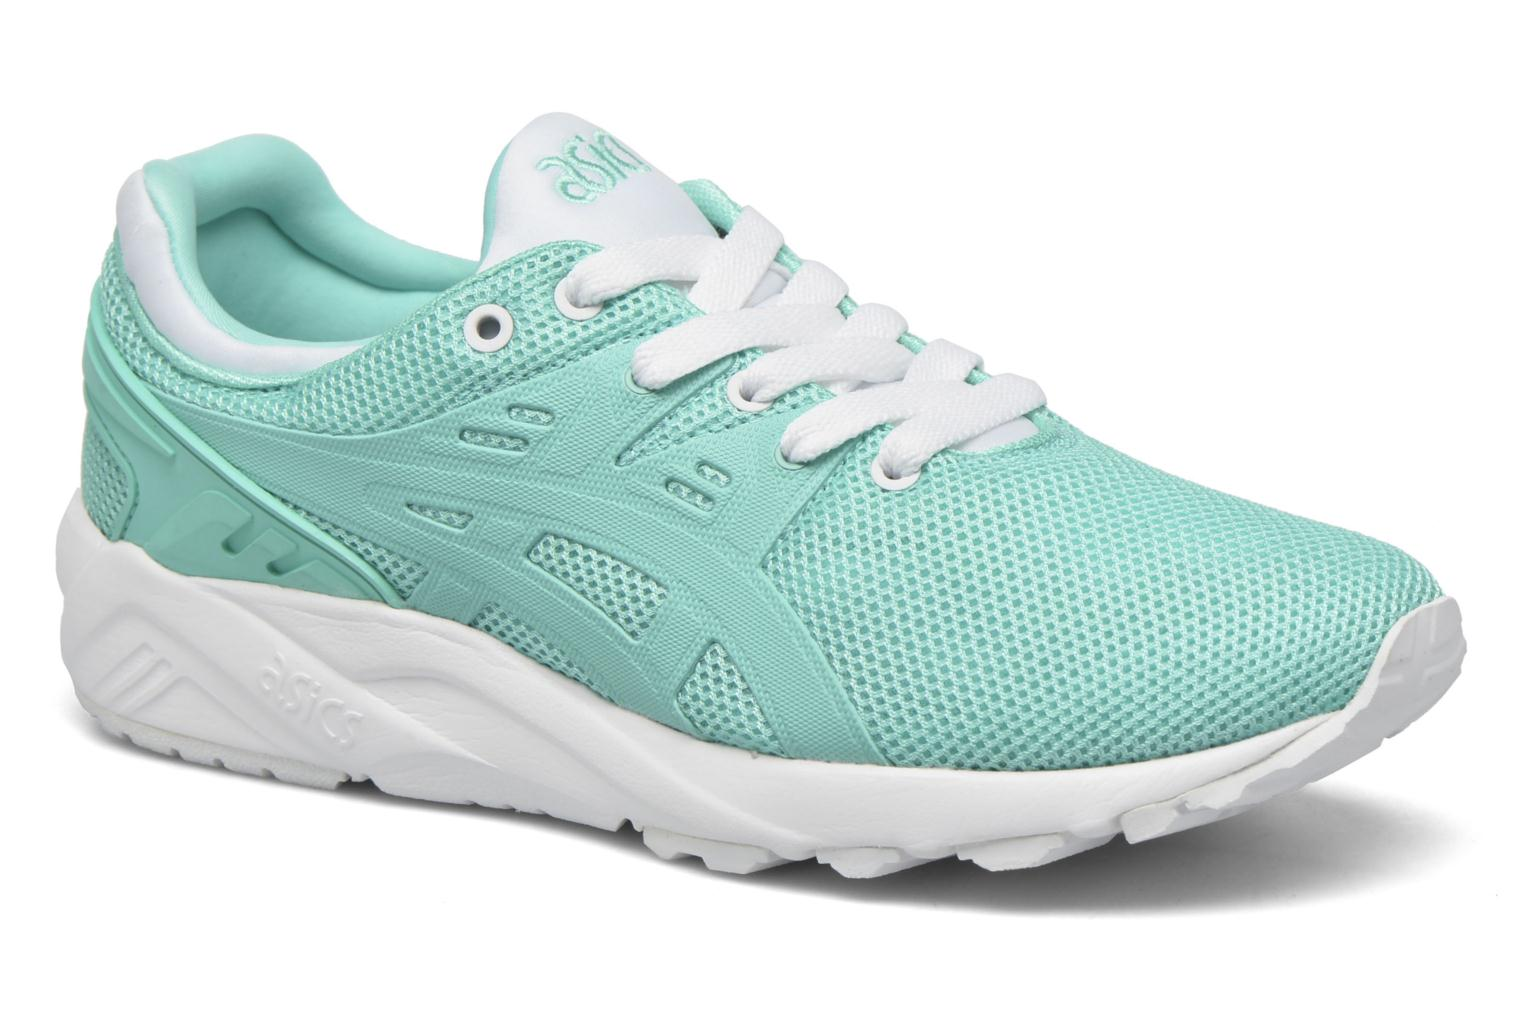 Gel-Kayano Trainer Evo W Cockatoo/Cockatoo